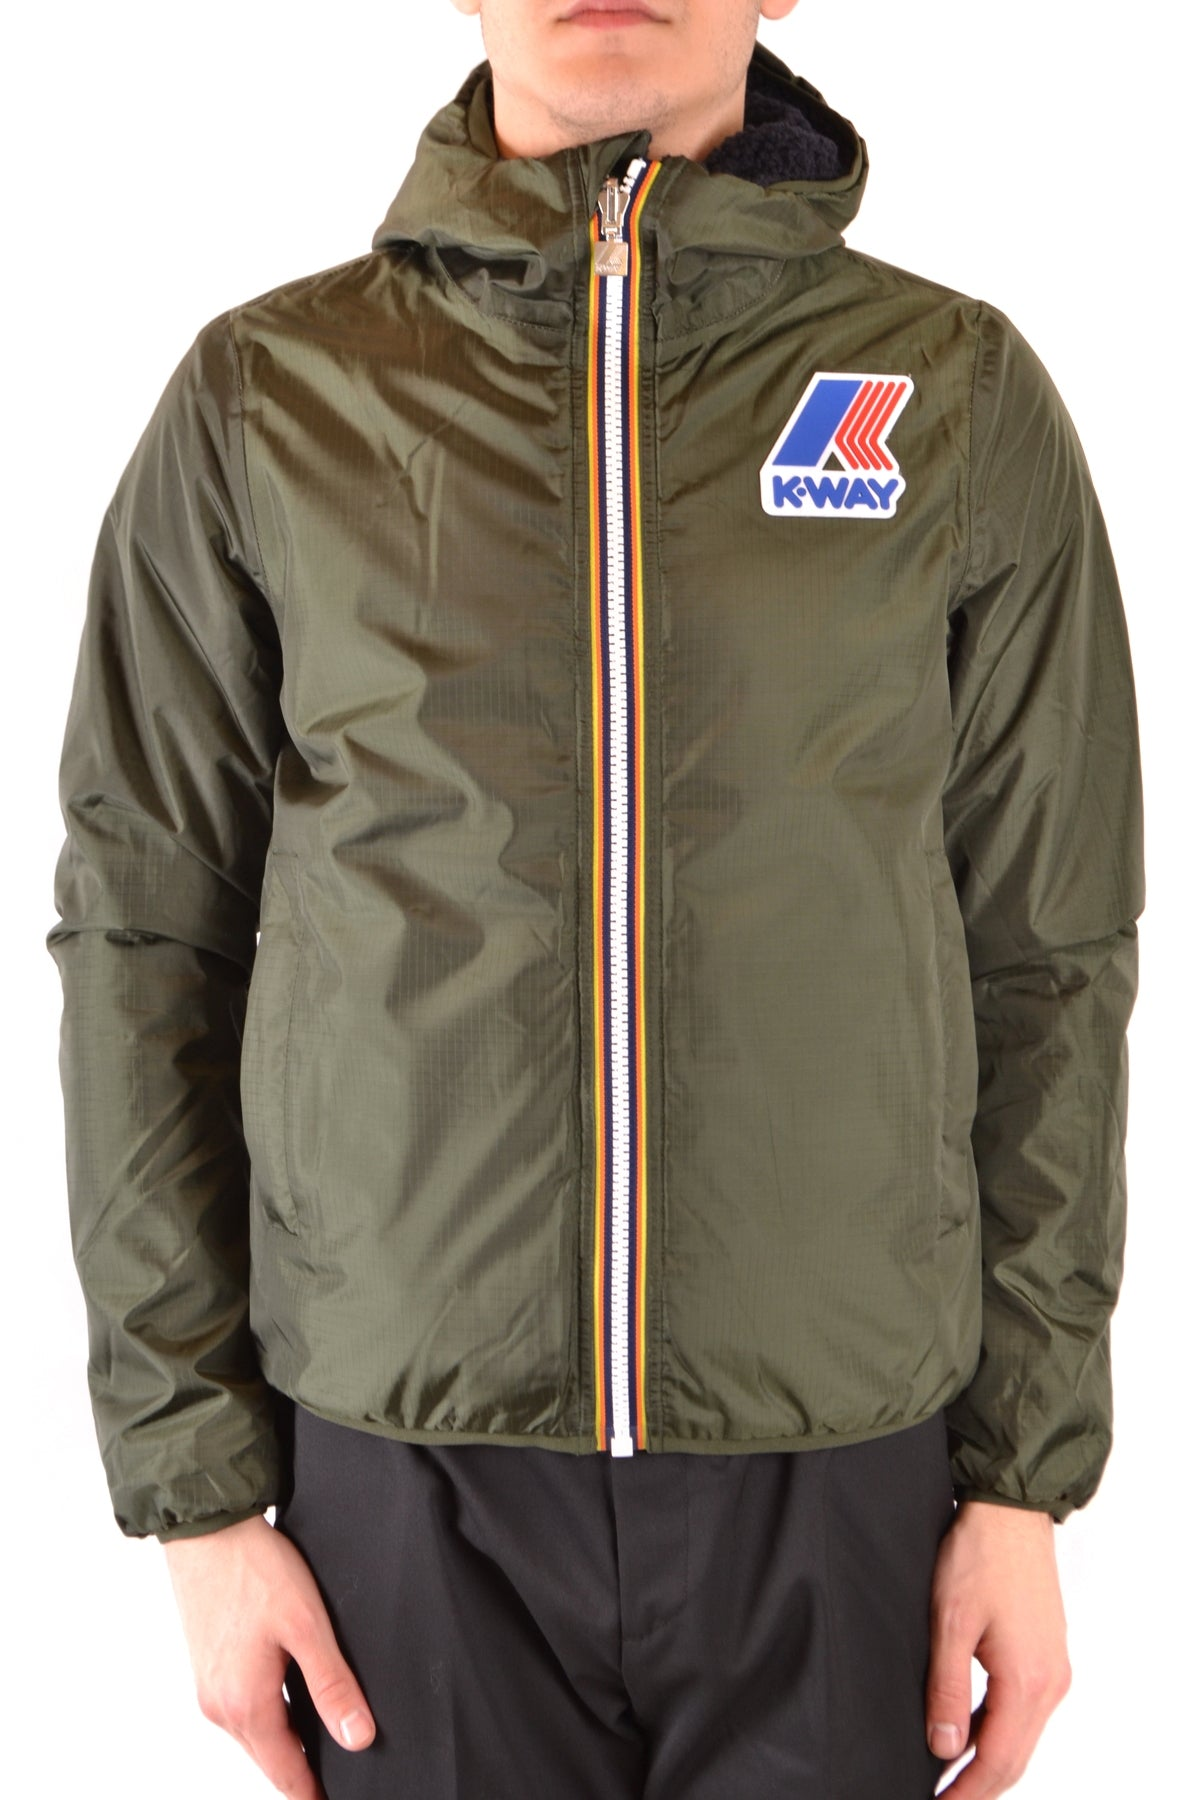 Jacket K-Way-Men's Fashion - Men's Clothing - Jackets & Coats - Jackets-S-Product Details Manufacturer Part Number: K009M90Year: 2018Composition: Polyamide 100%Size: IntGender: ManMade In: ChinaSeason: Fall / WinterMain Color: Military GreenClothing Type: BlousonTerms: New With Label-Keyomi-Sook